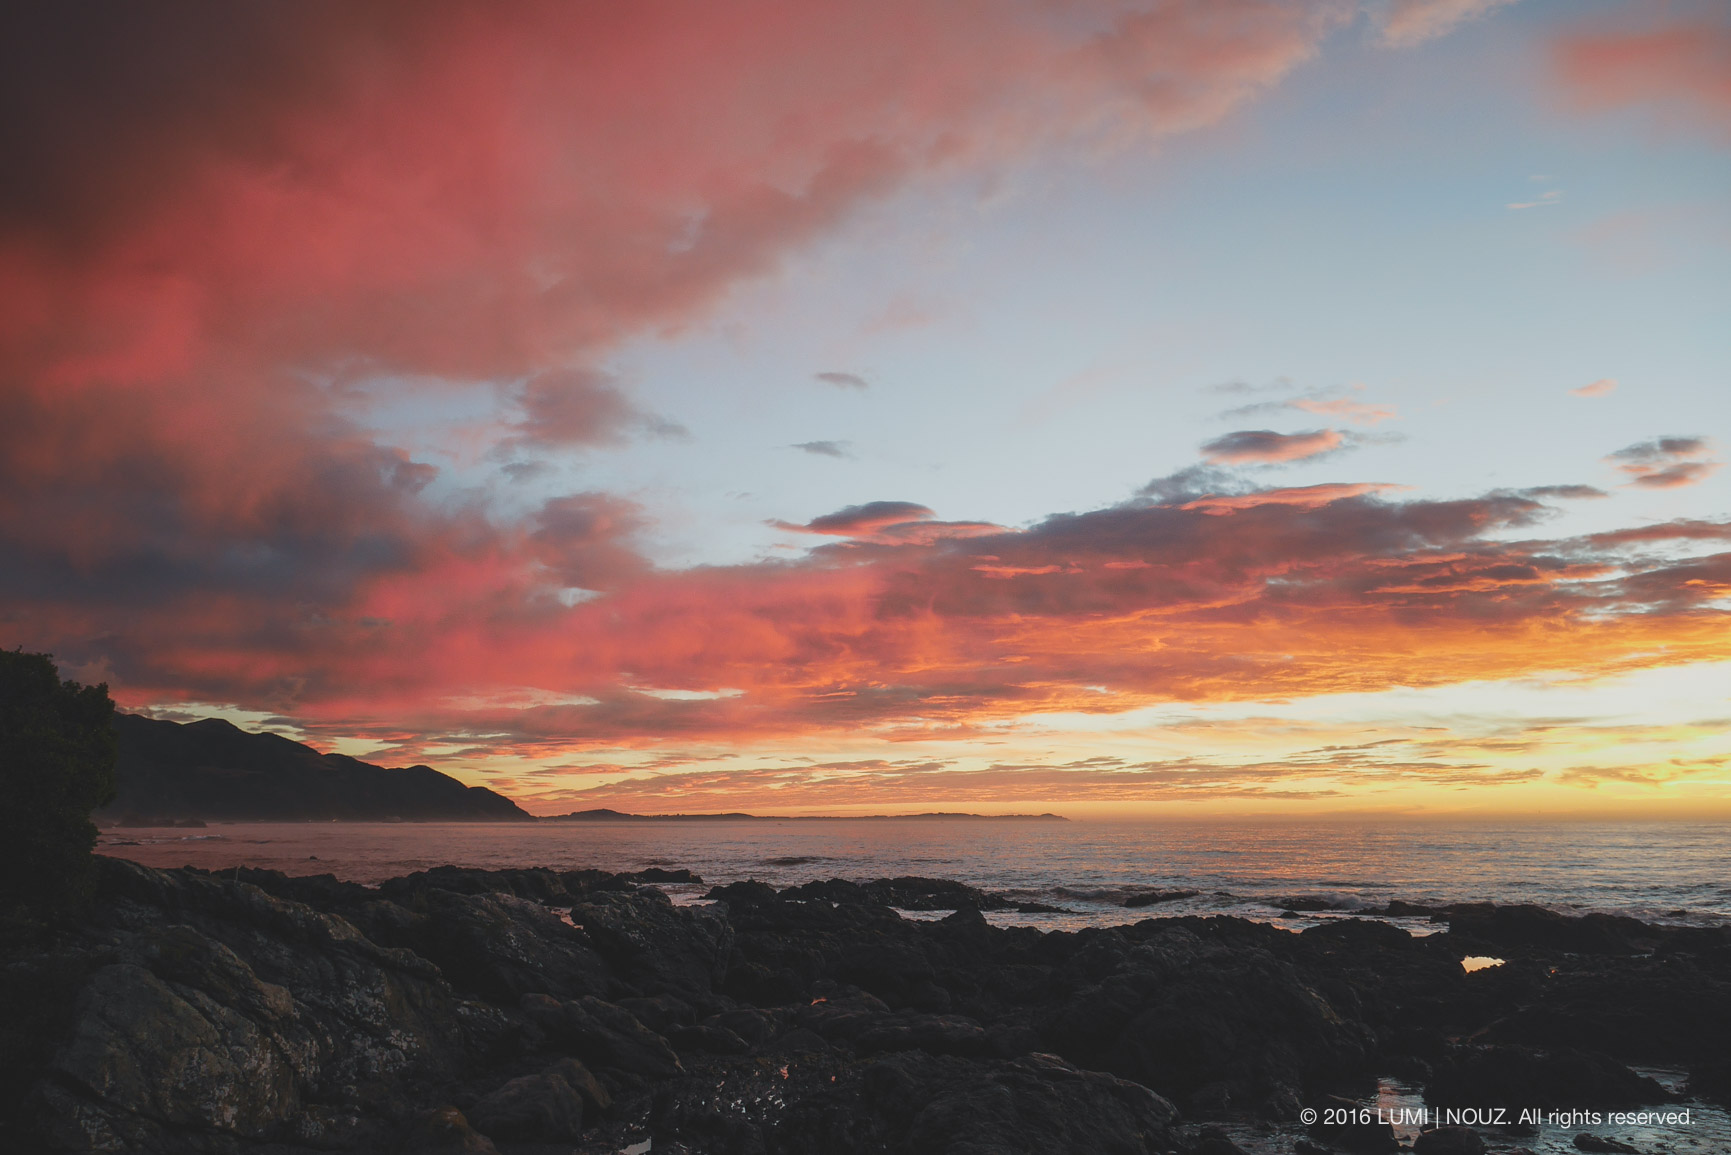 Kaikoura, South Island, New Zealand